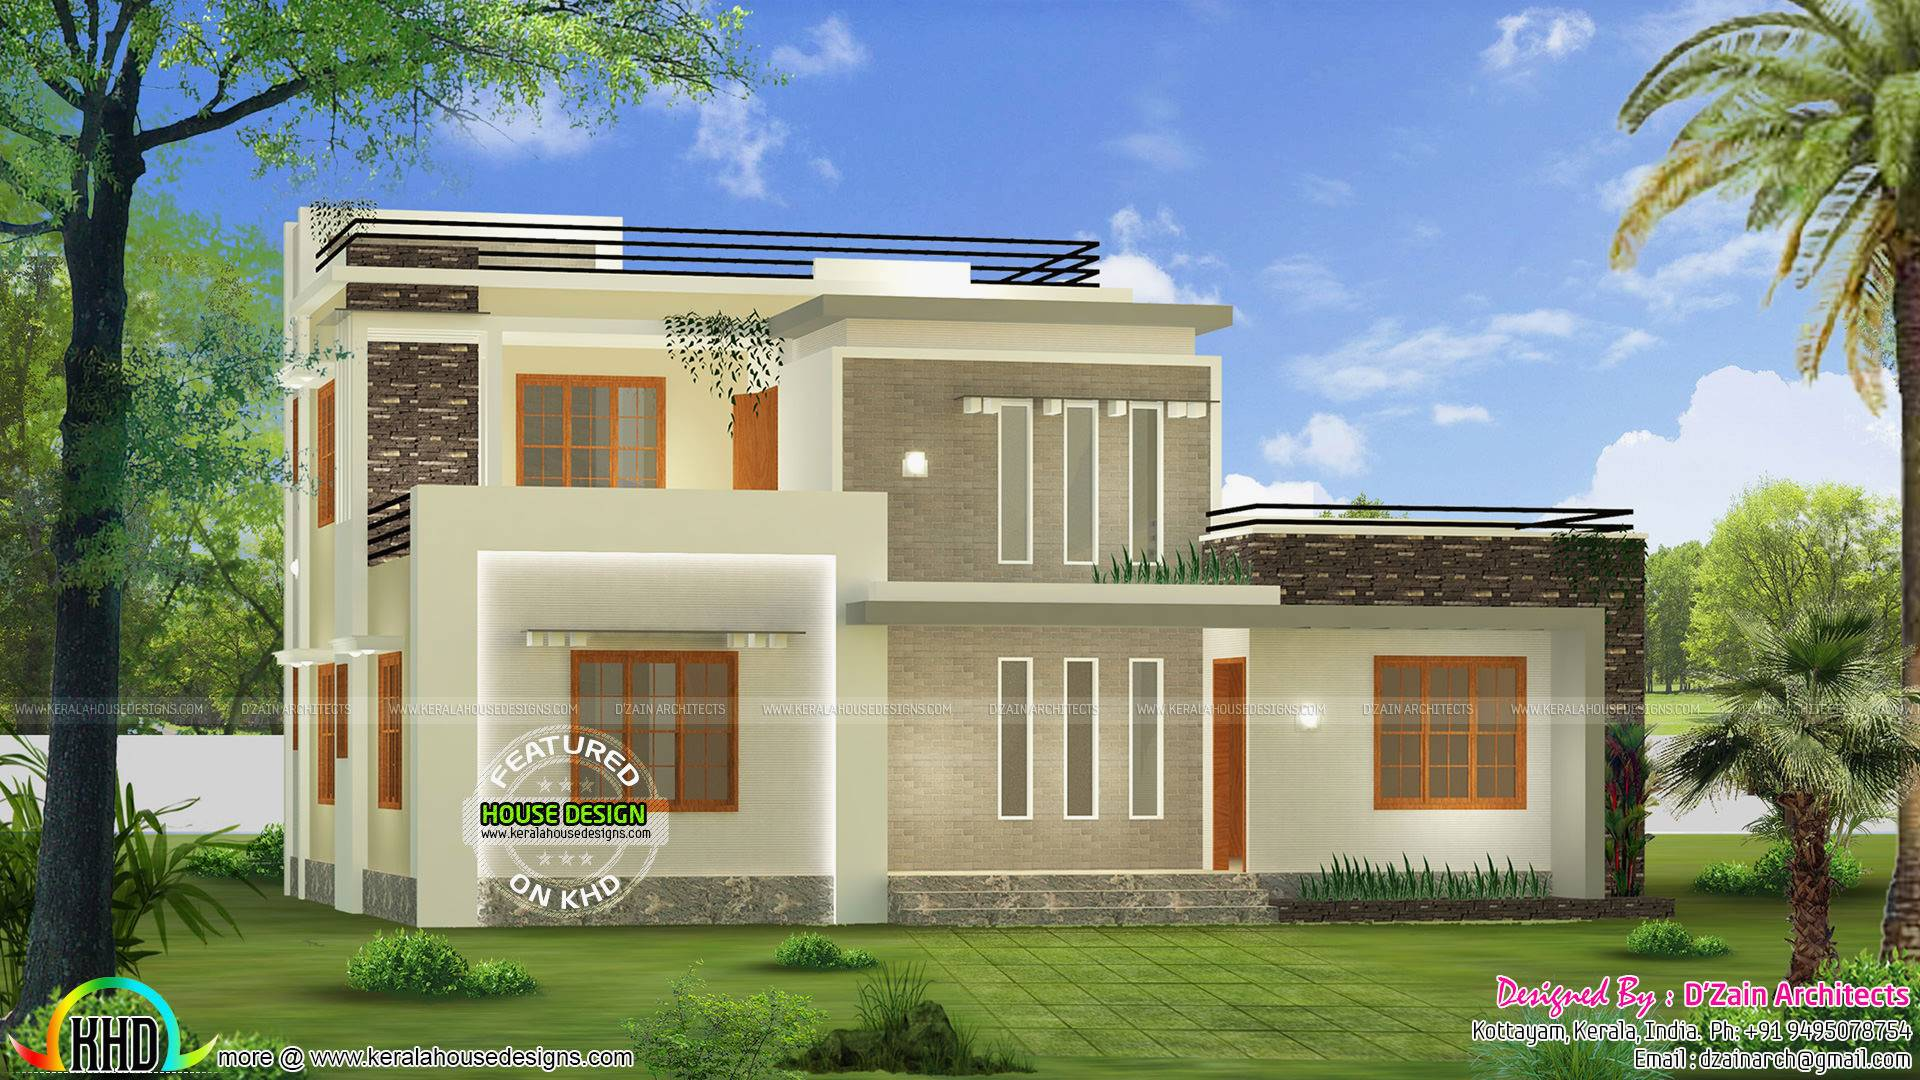 The Sater Design Collection appealing home design collection dream house fresh - house